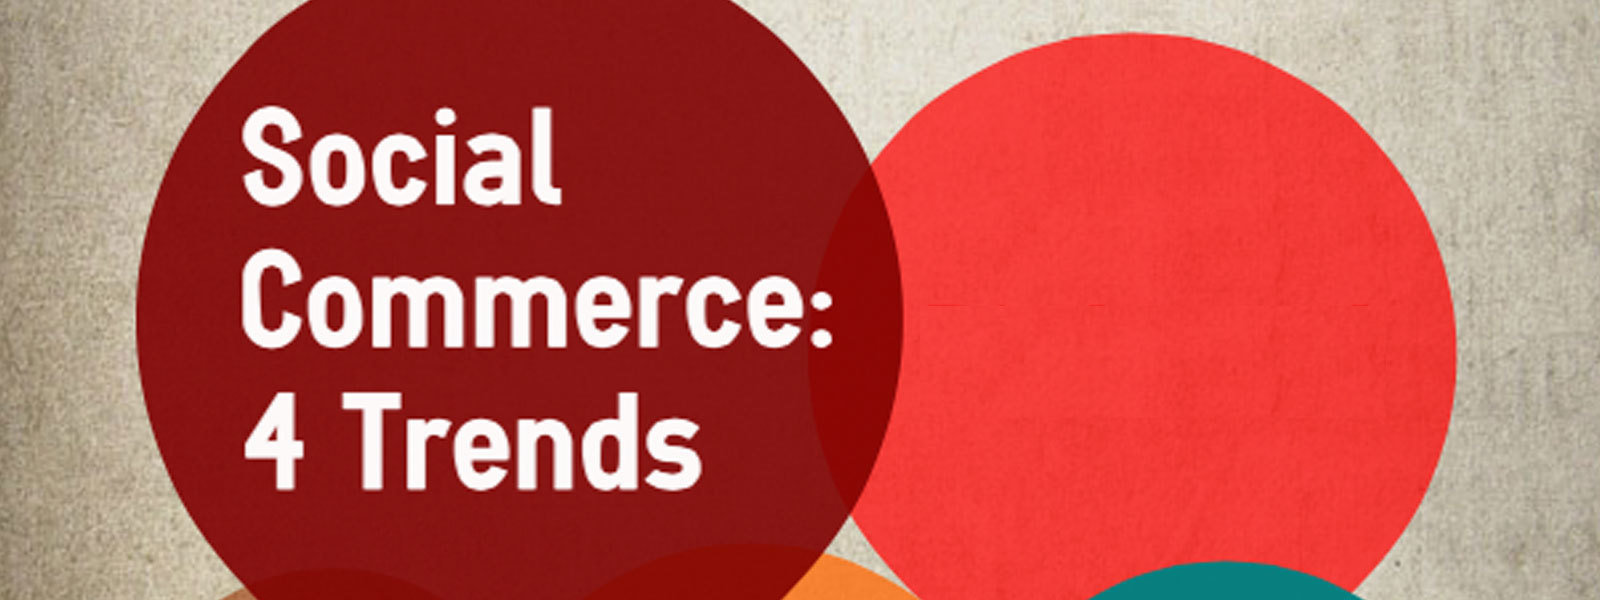 Vier trends van Social Commerce